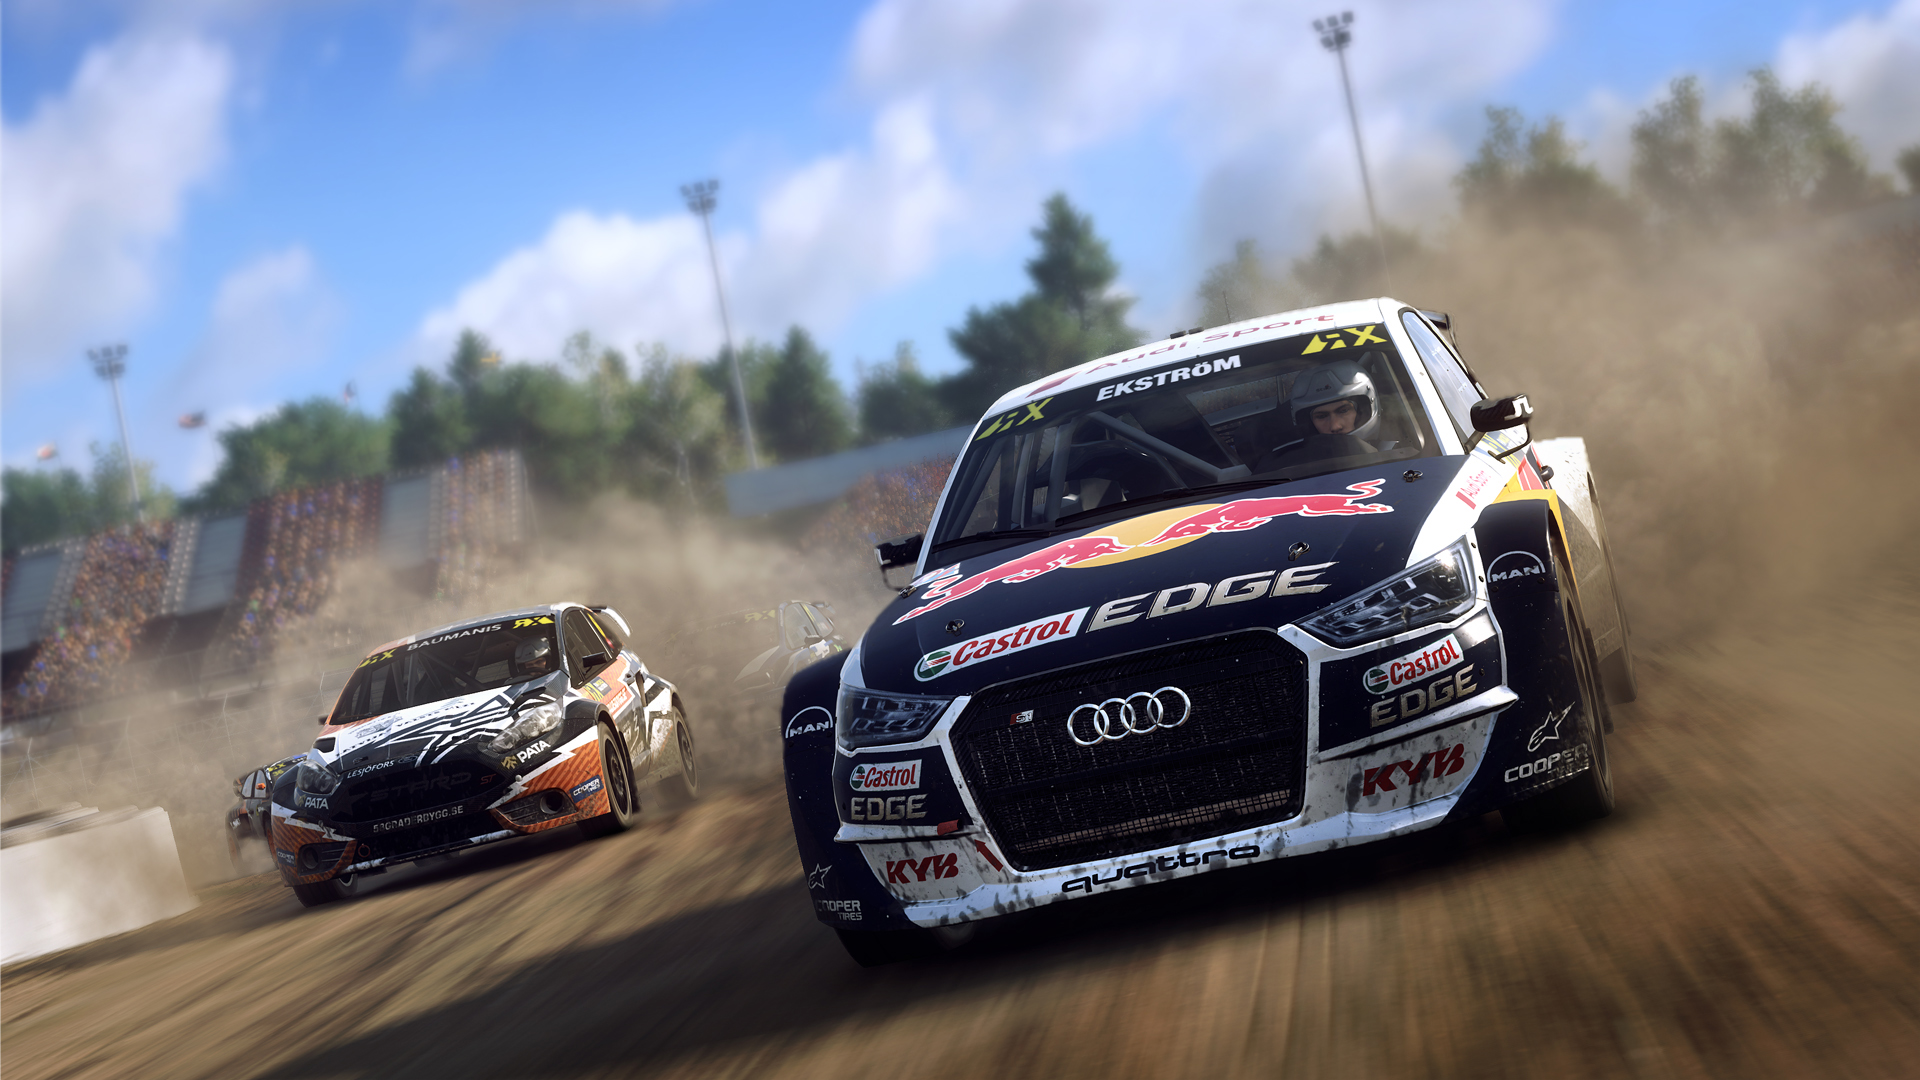 DiRT Rally 2.0 hands-on preview and interview – mud, sweat, and tyres